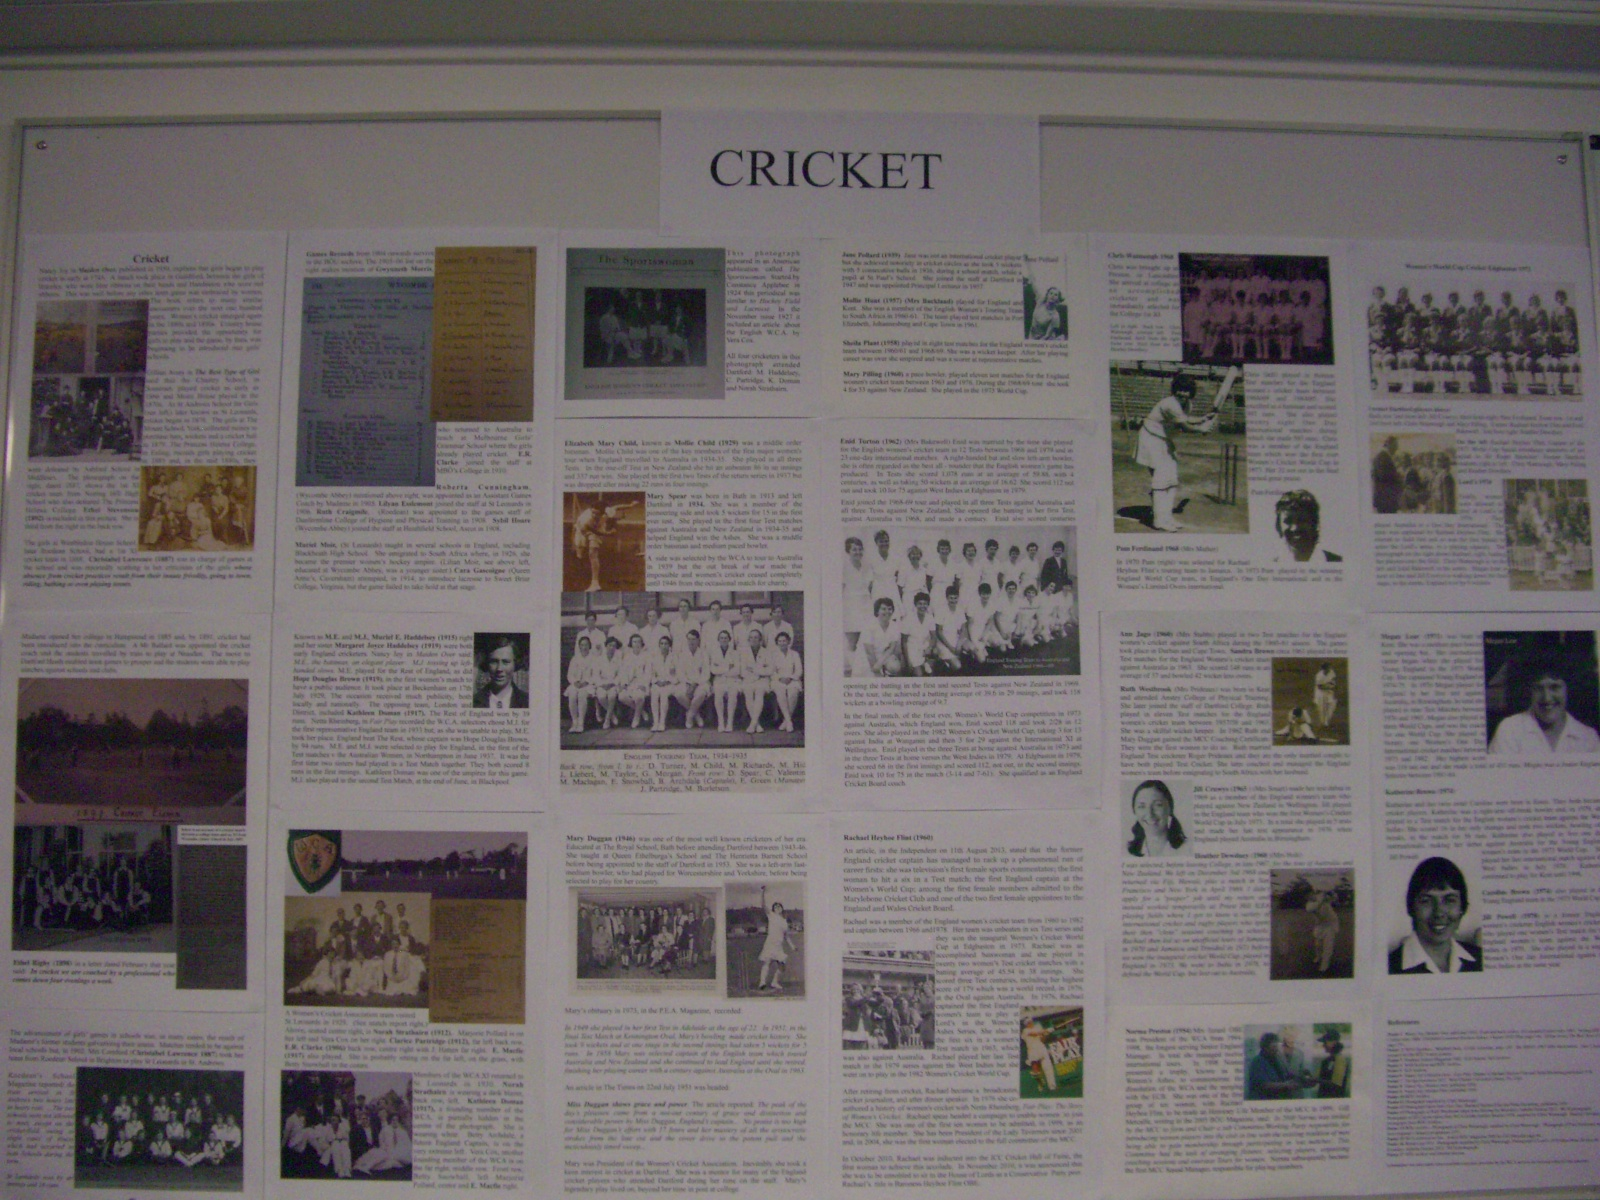 Cricket CIMG1849